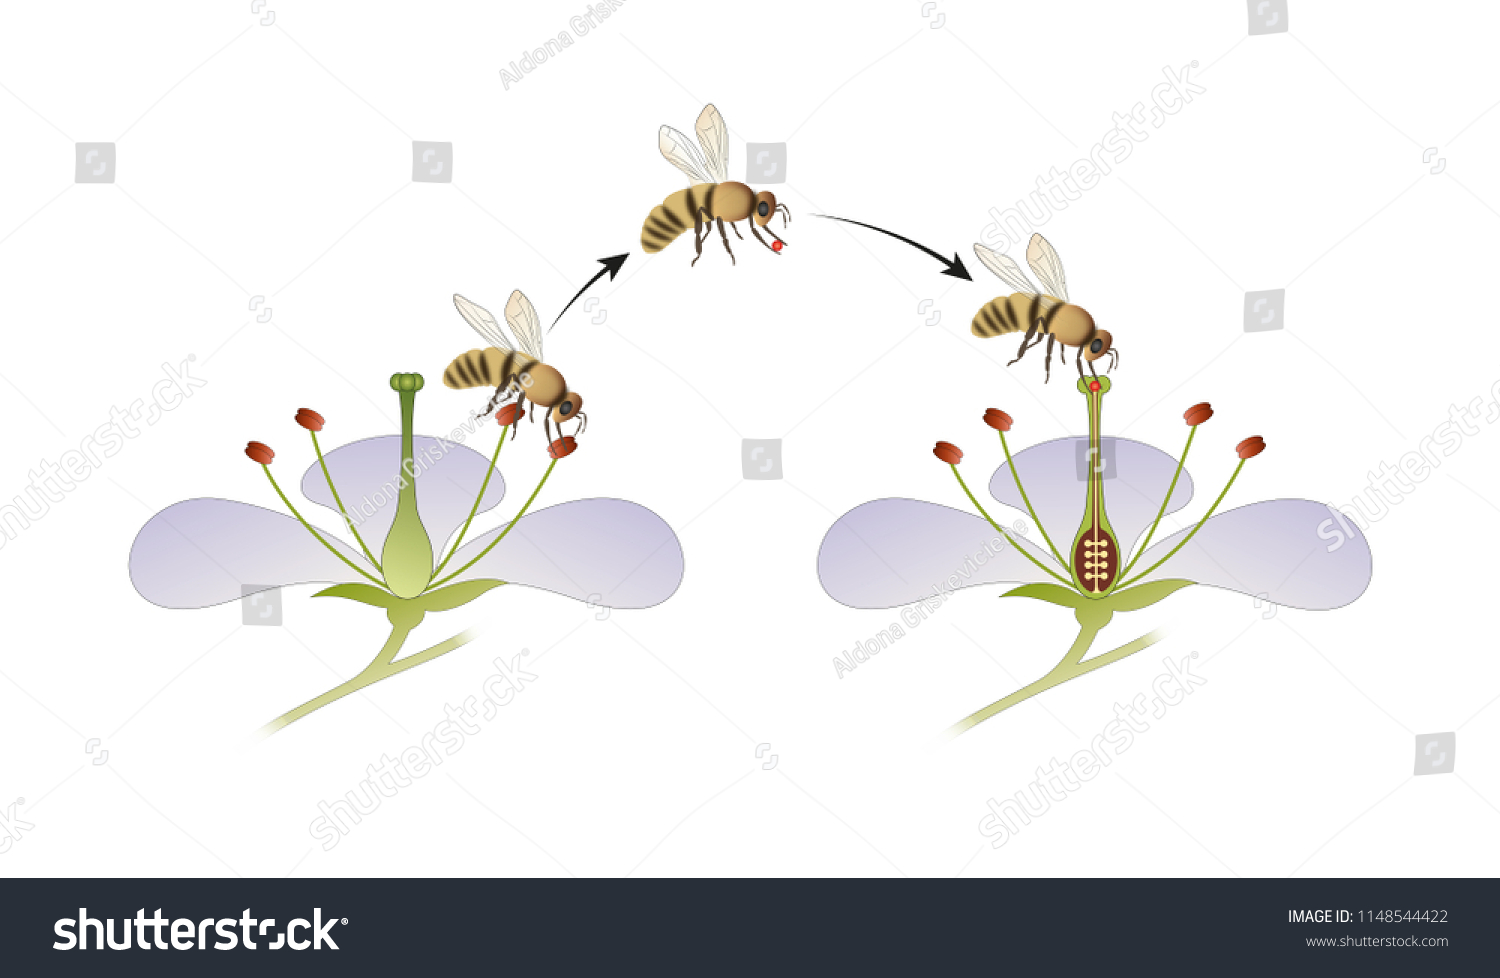 hight resolution of diagram of flower pollination by an insect